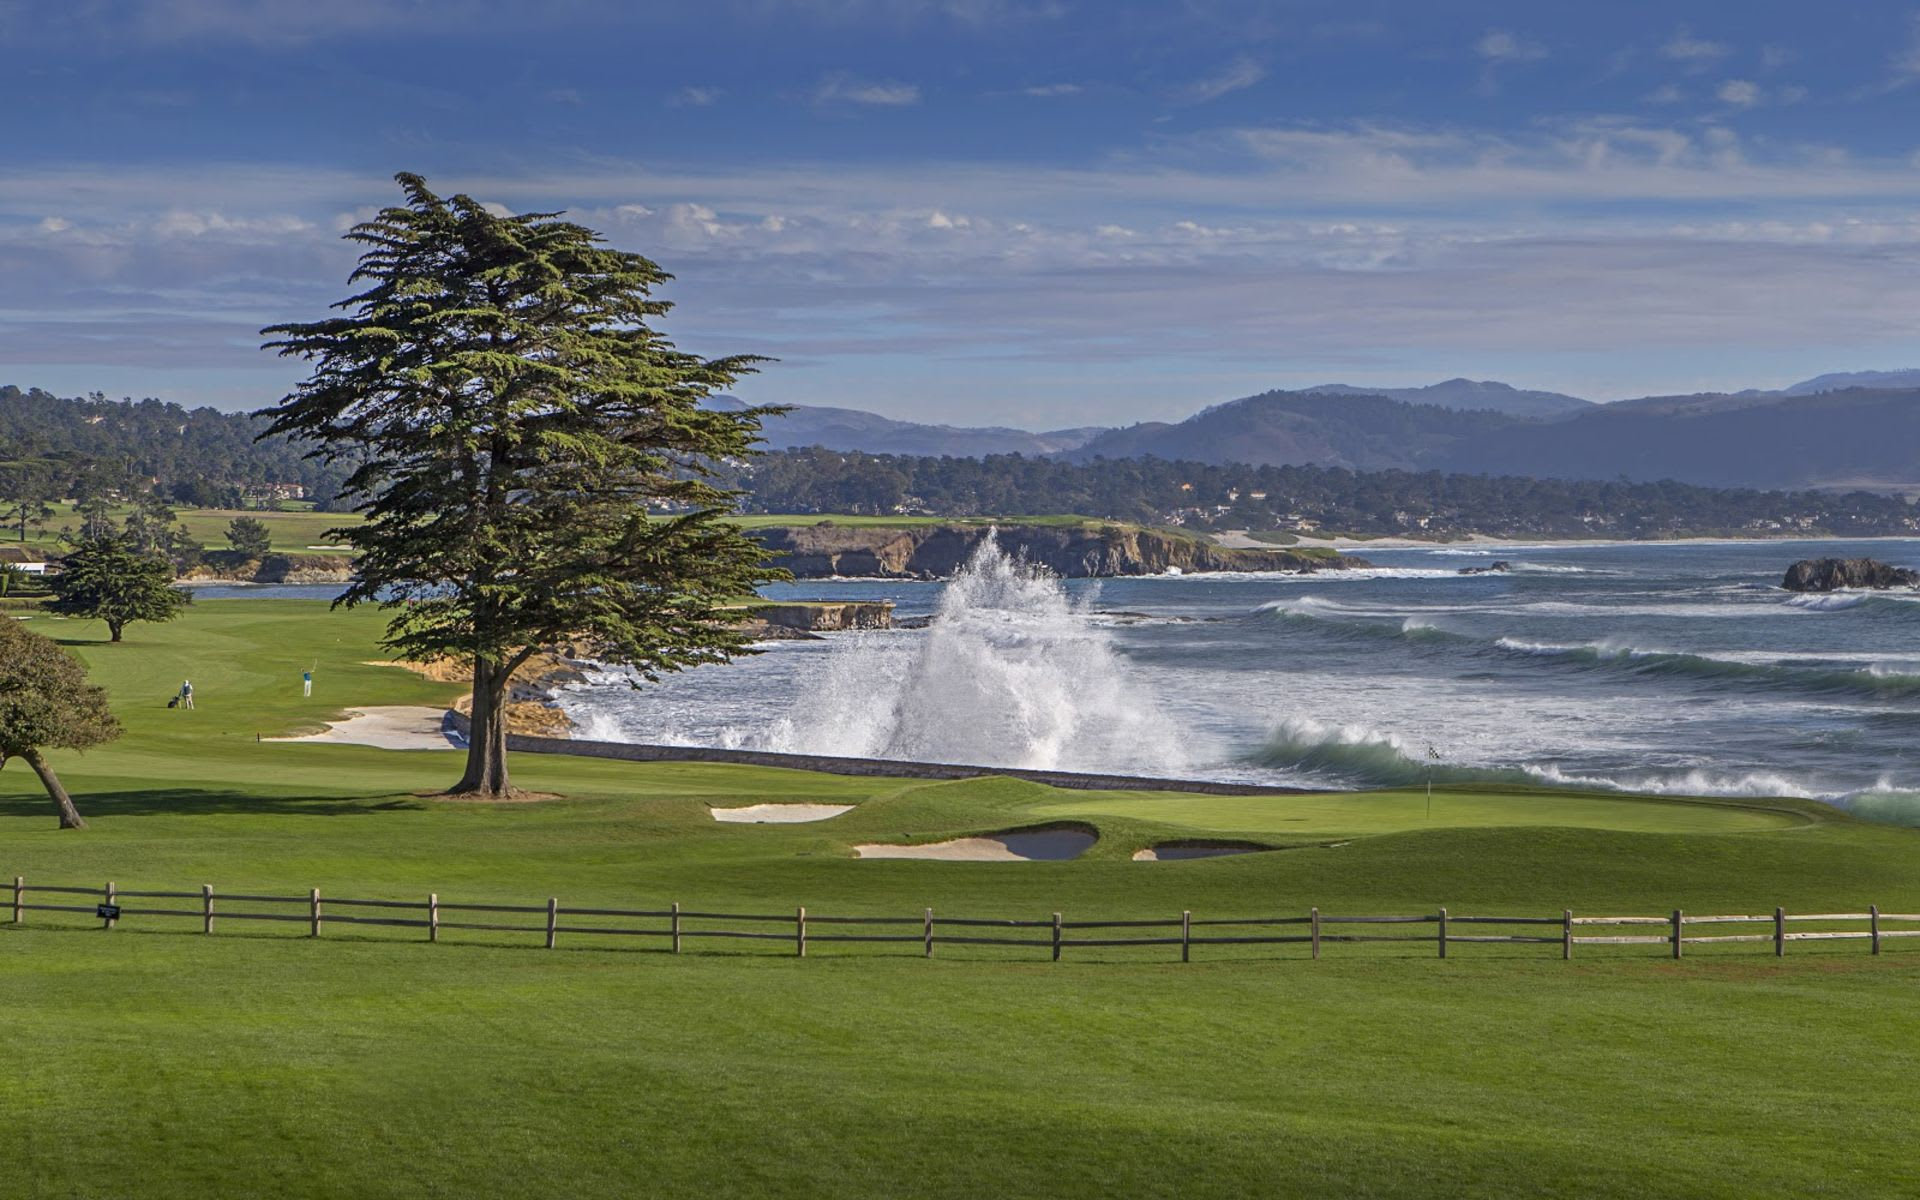 From Phil Harris to Phil Mickelson: Exploring the Evolution of the AT&T Pebble Beach Pro-Am